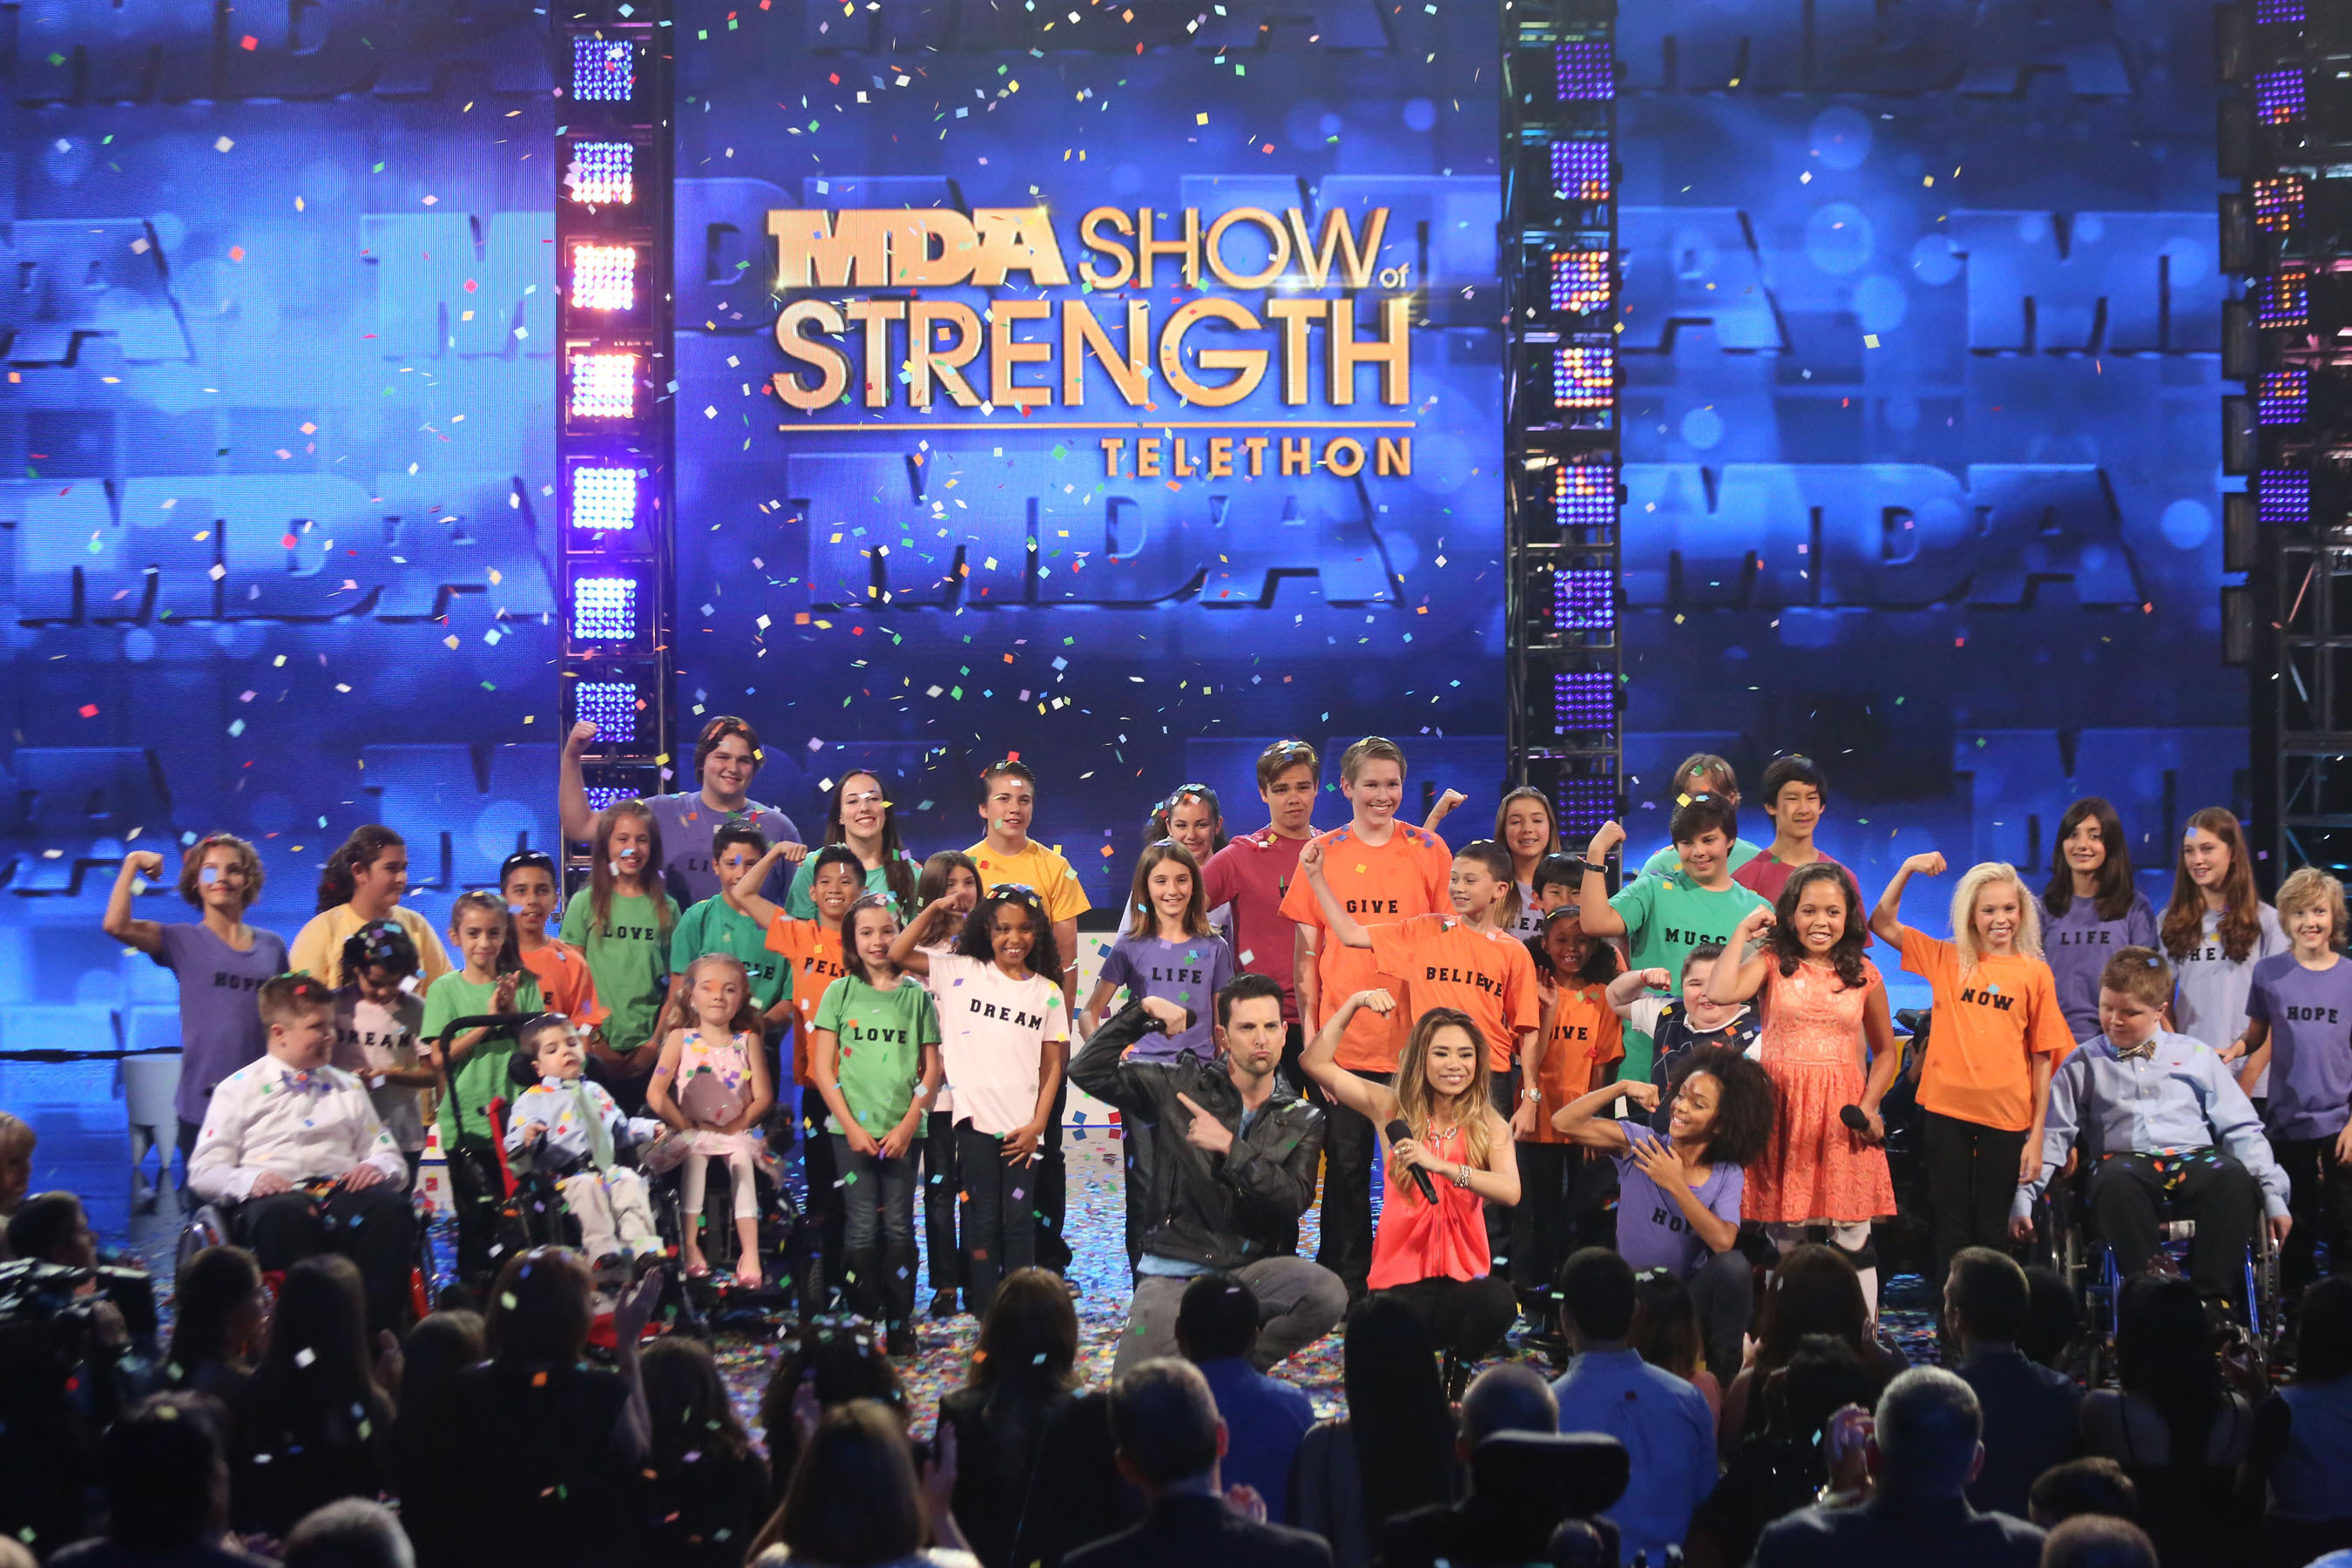 The MDA Show of Strength Telethon two-hour, prime-time special to benefit the Muscular Dystrophy Association aired Sunday night on ABC.  (PRNewsFoto/Muscular Dystrophy Association)